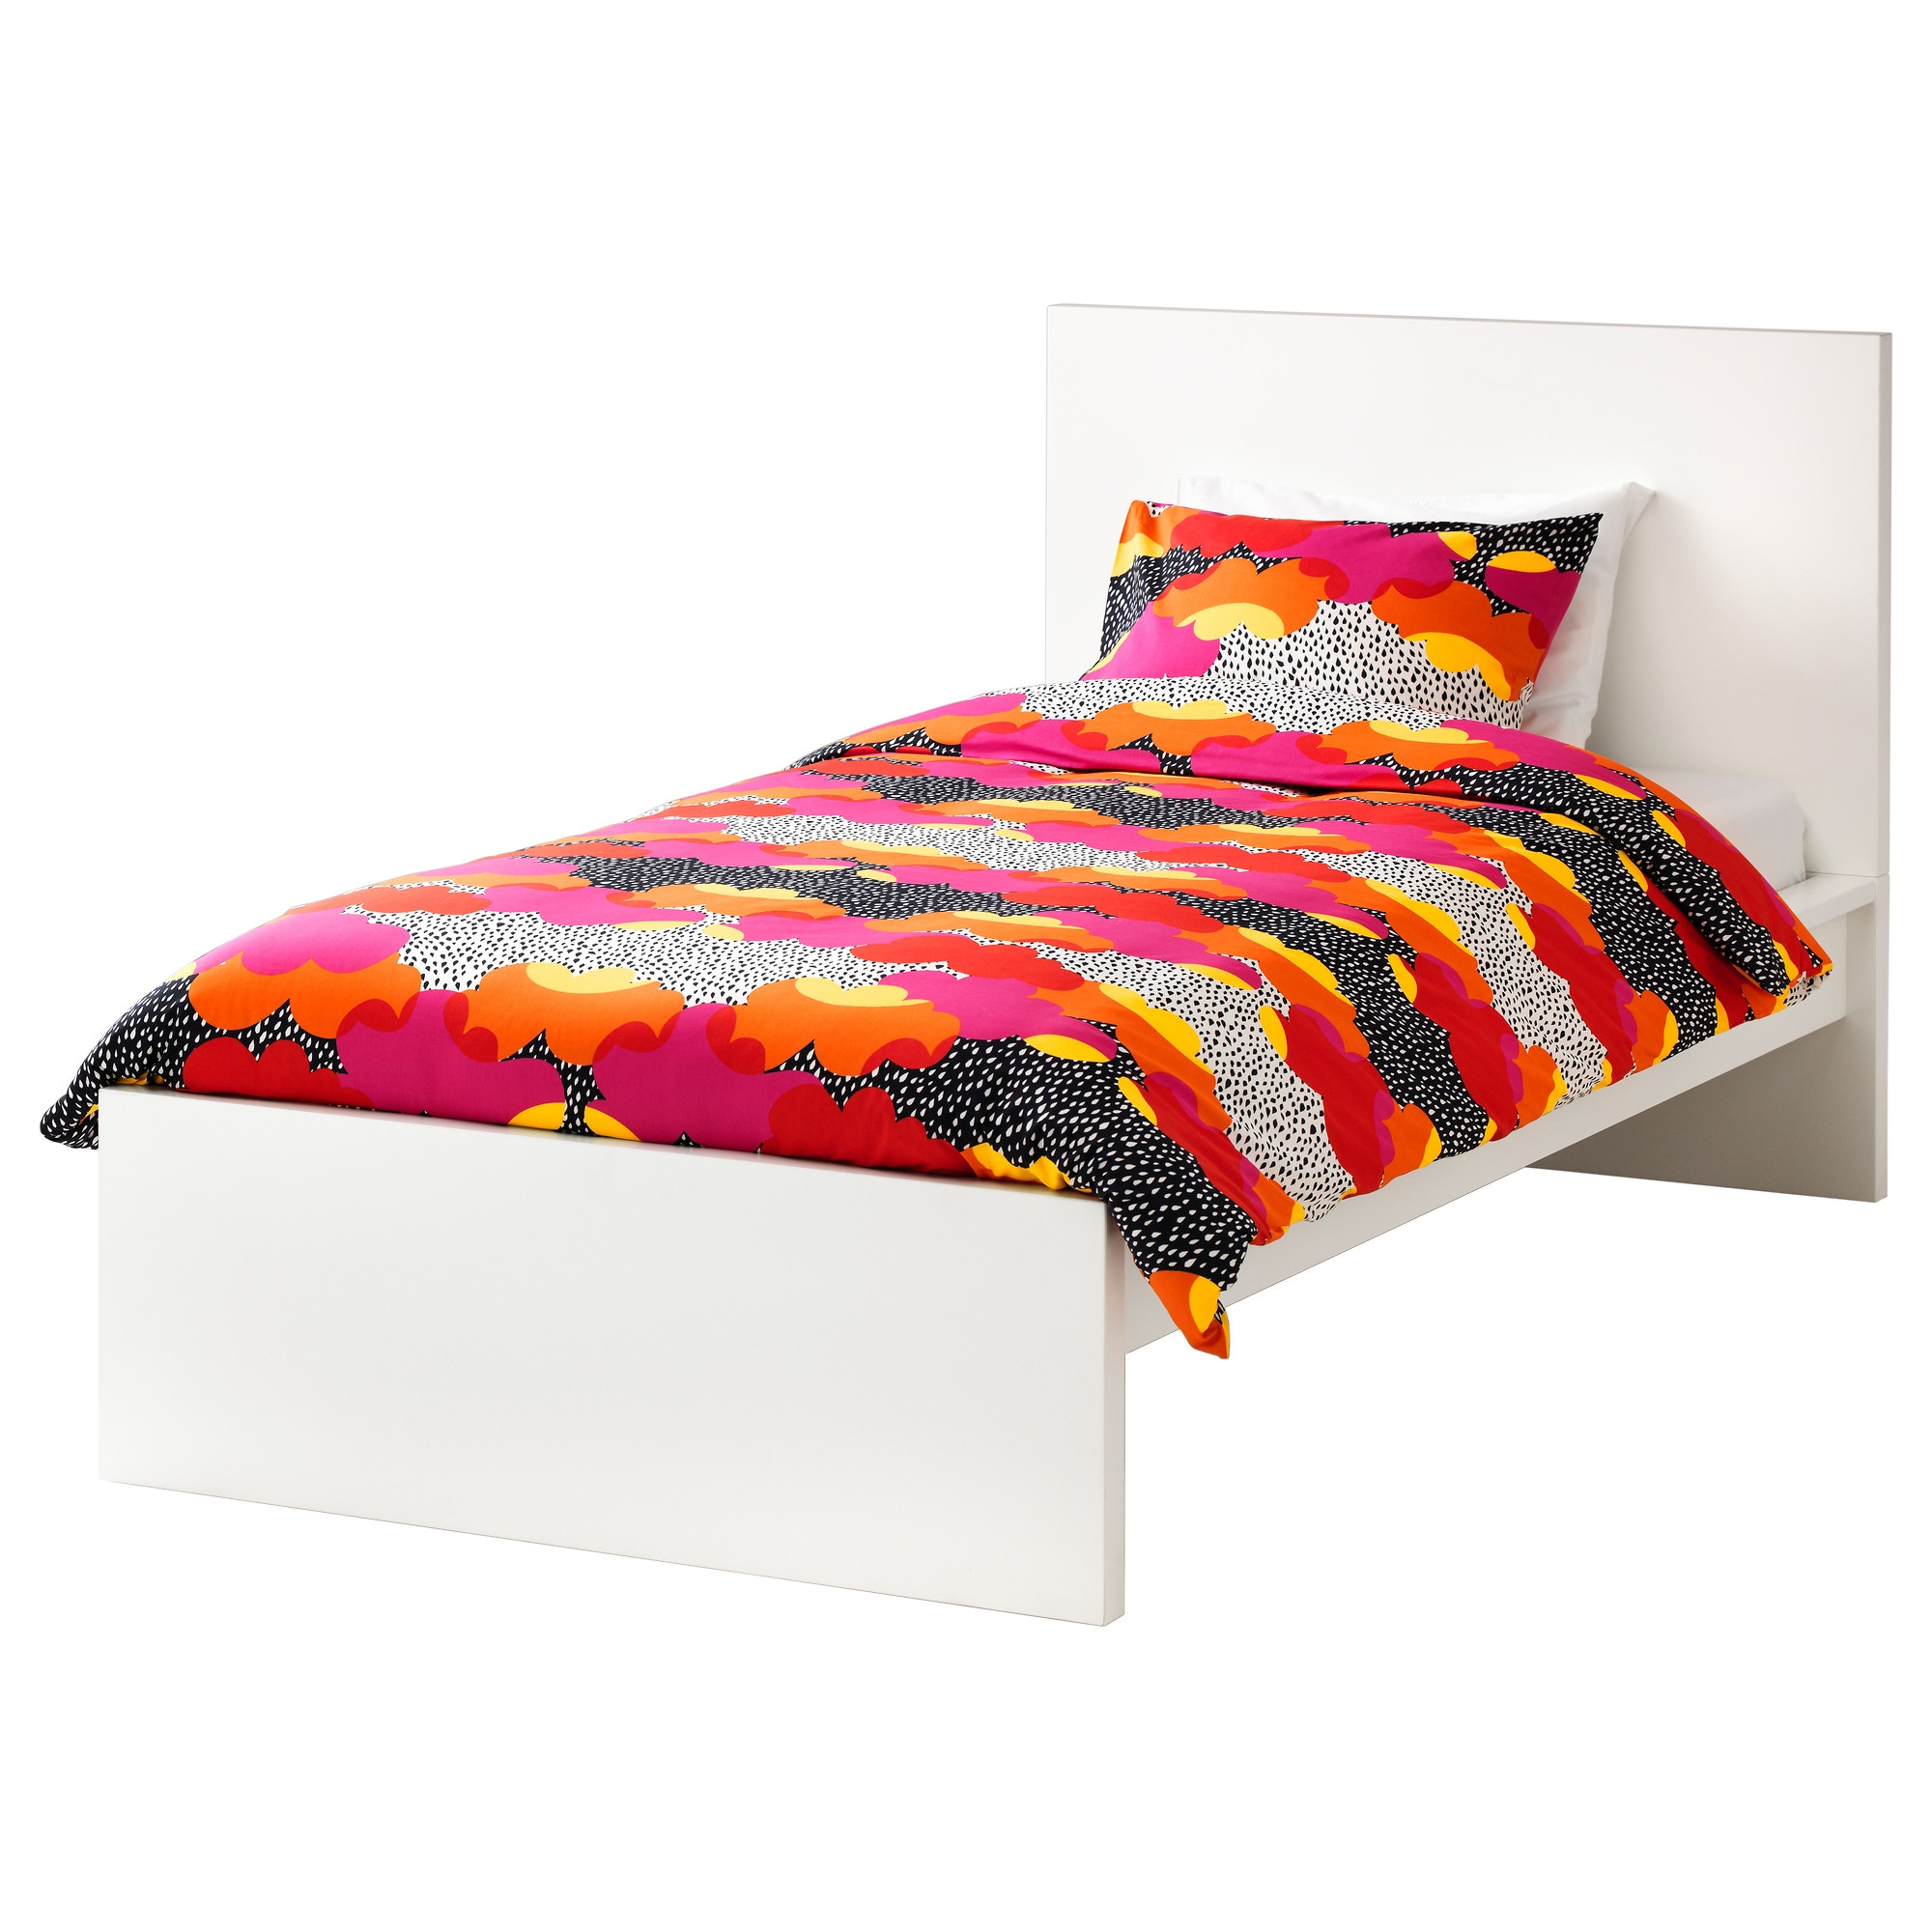 ikea metal bed frame twin mTykfPaT